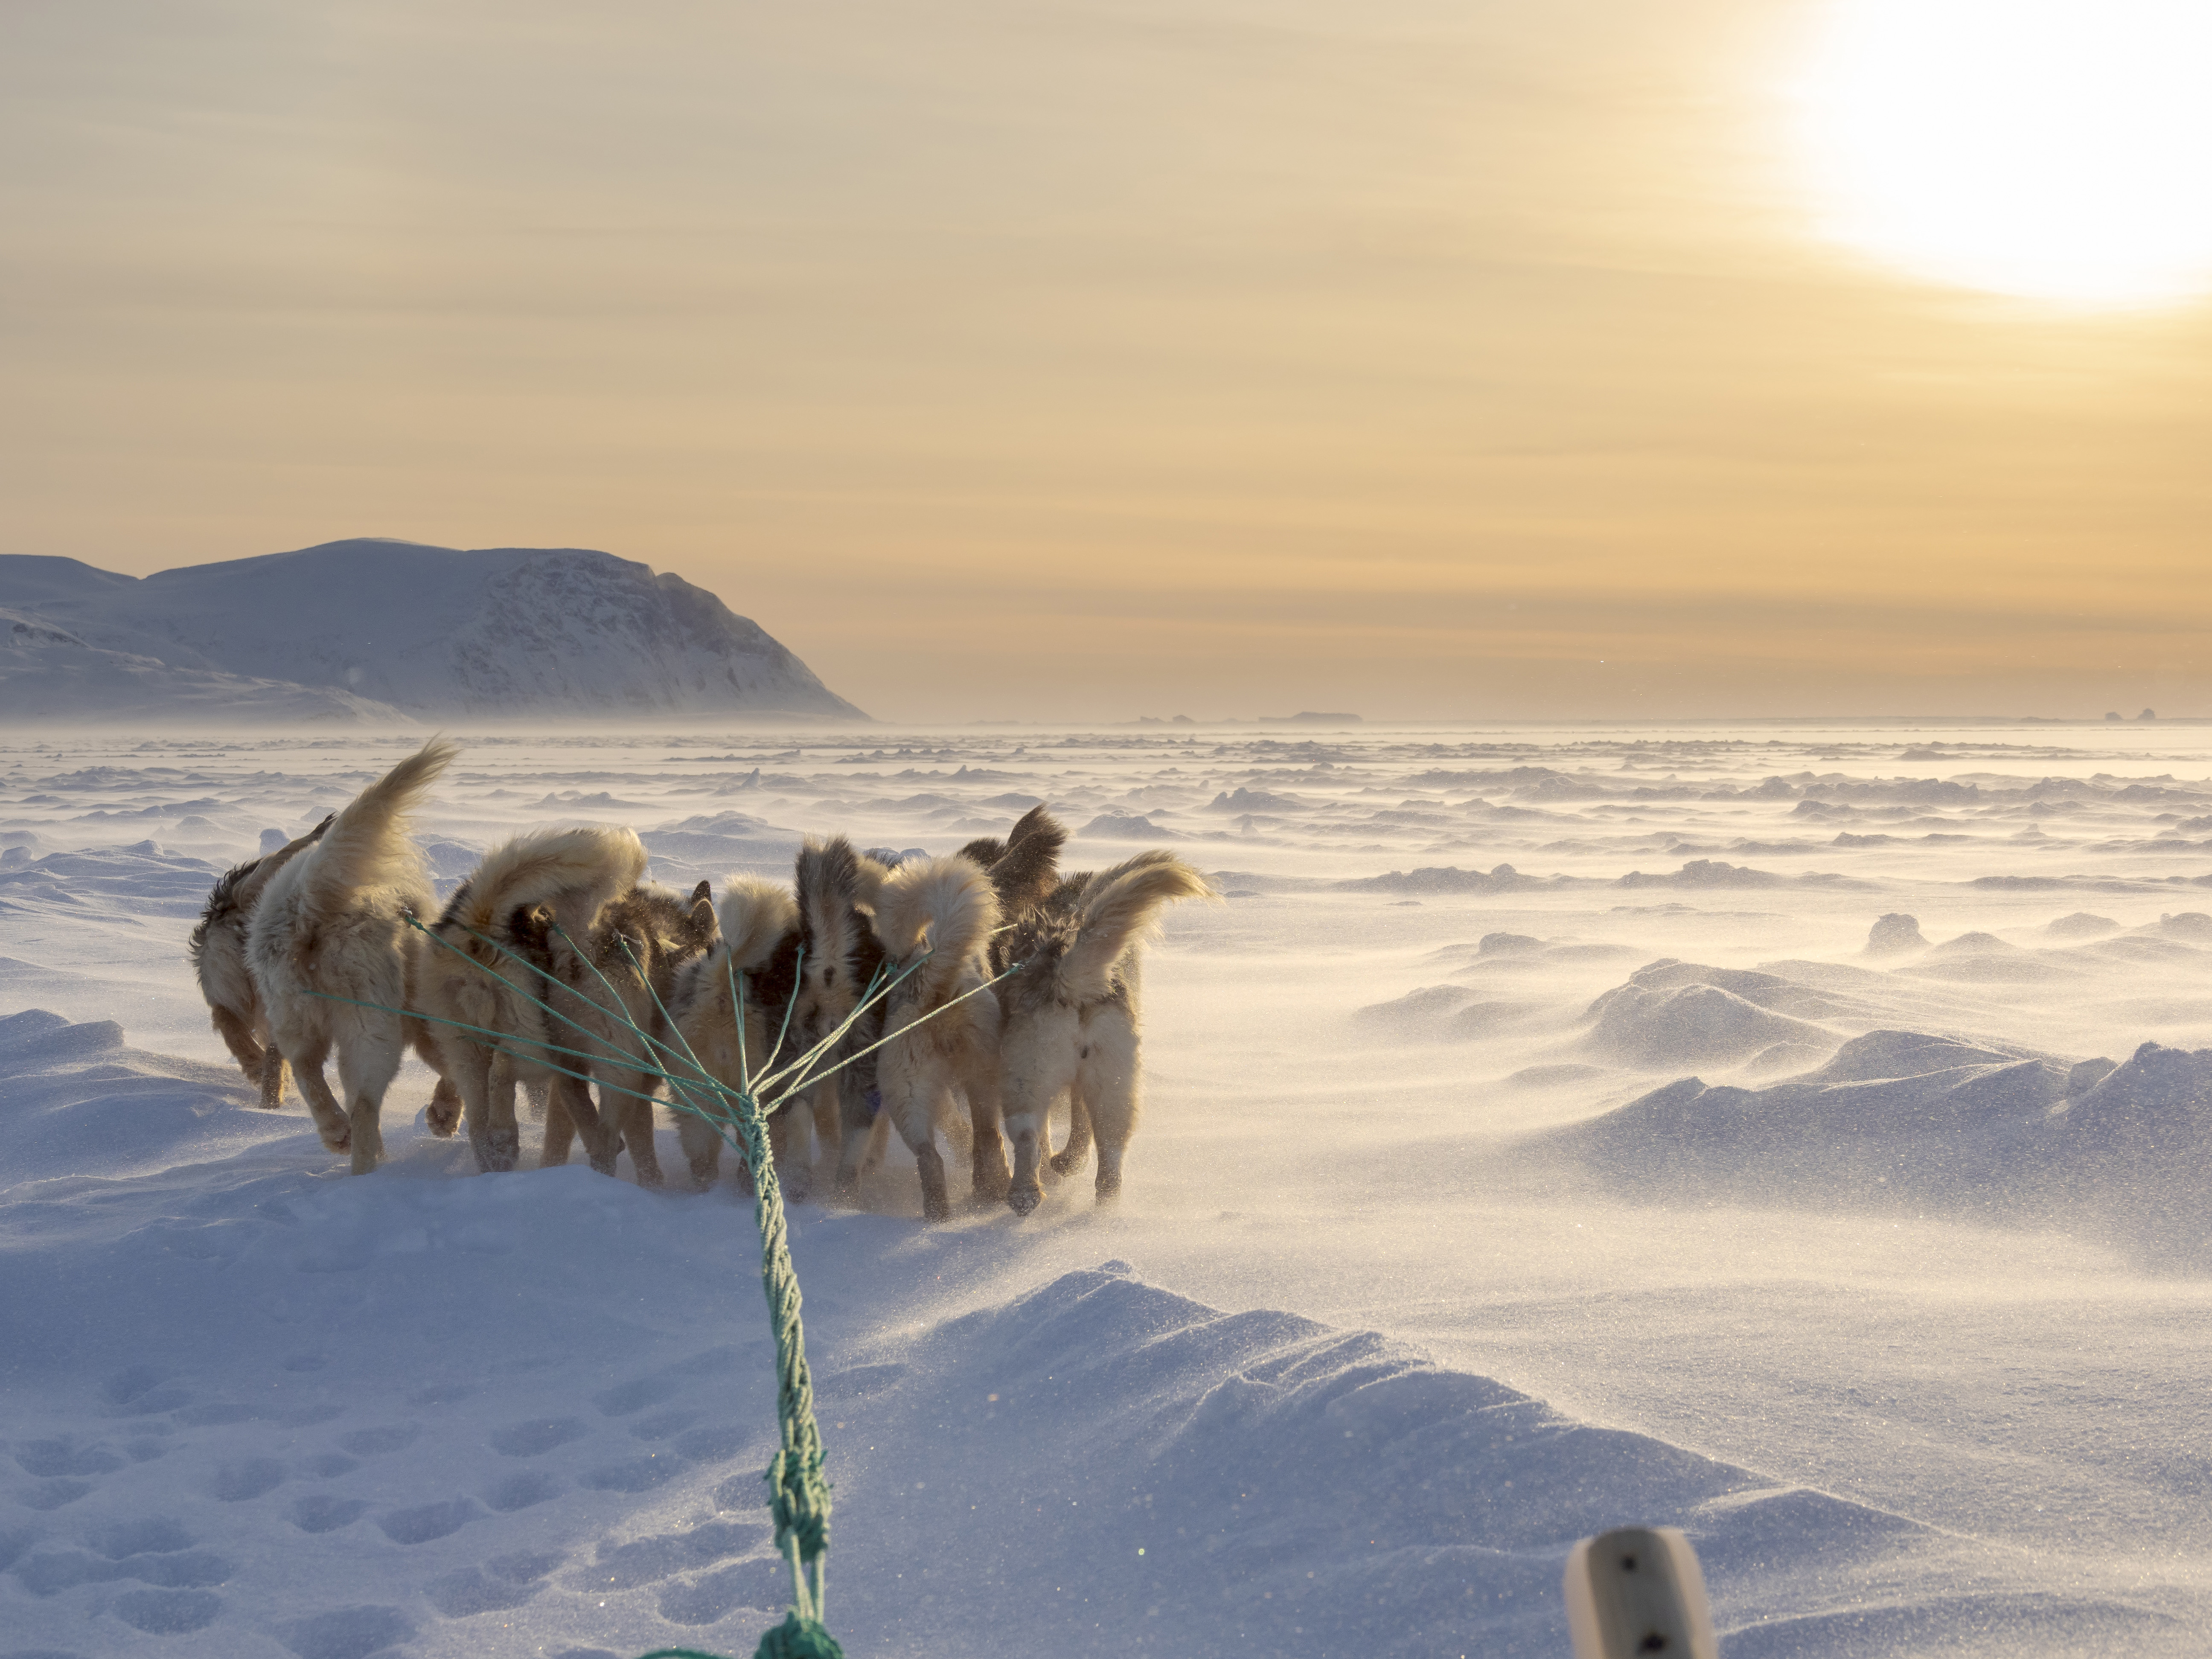 Dog sled in a fan hitch during a storm on the sea ice of the Melville Bay near Kullorsuaq in North Greenland. North America. danish teritorry